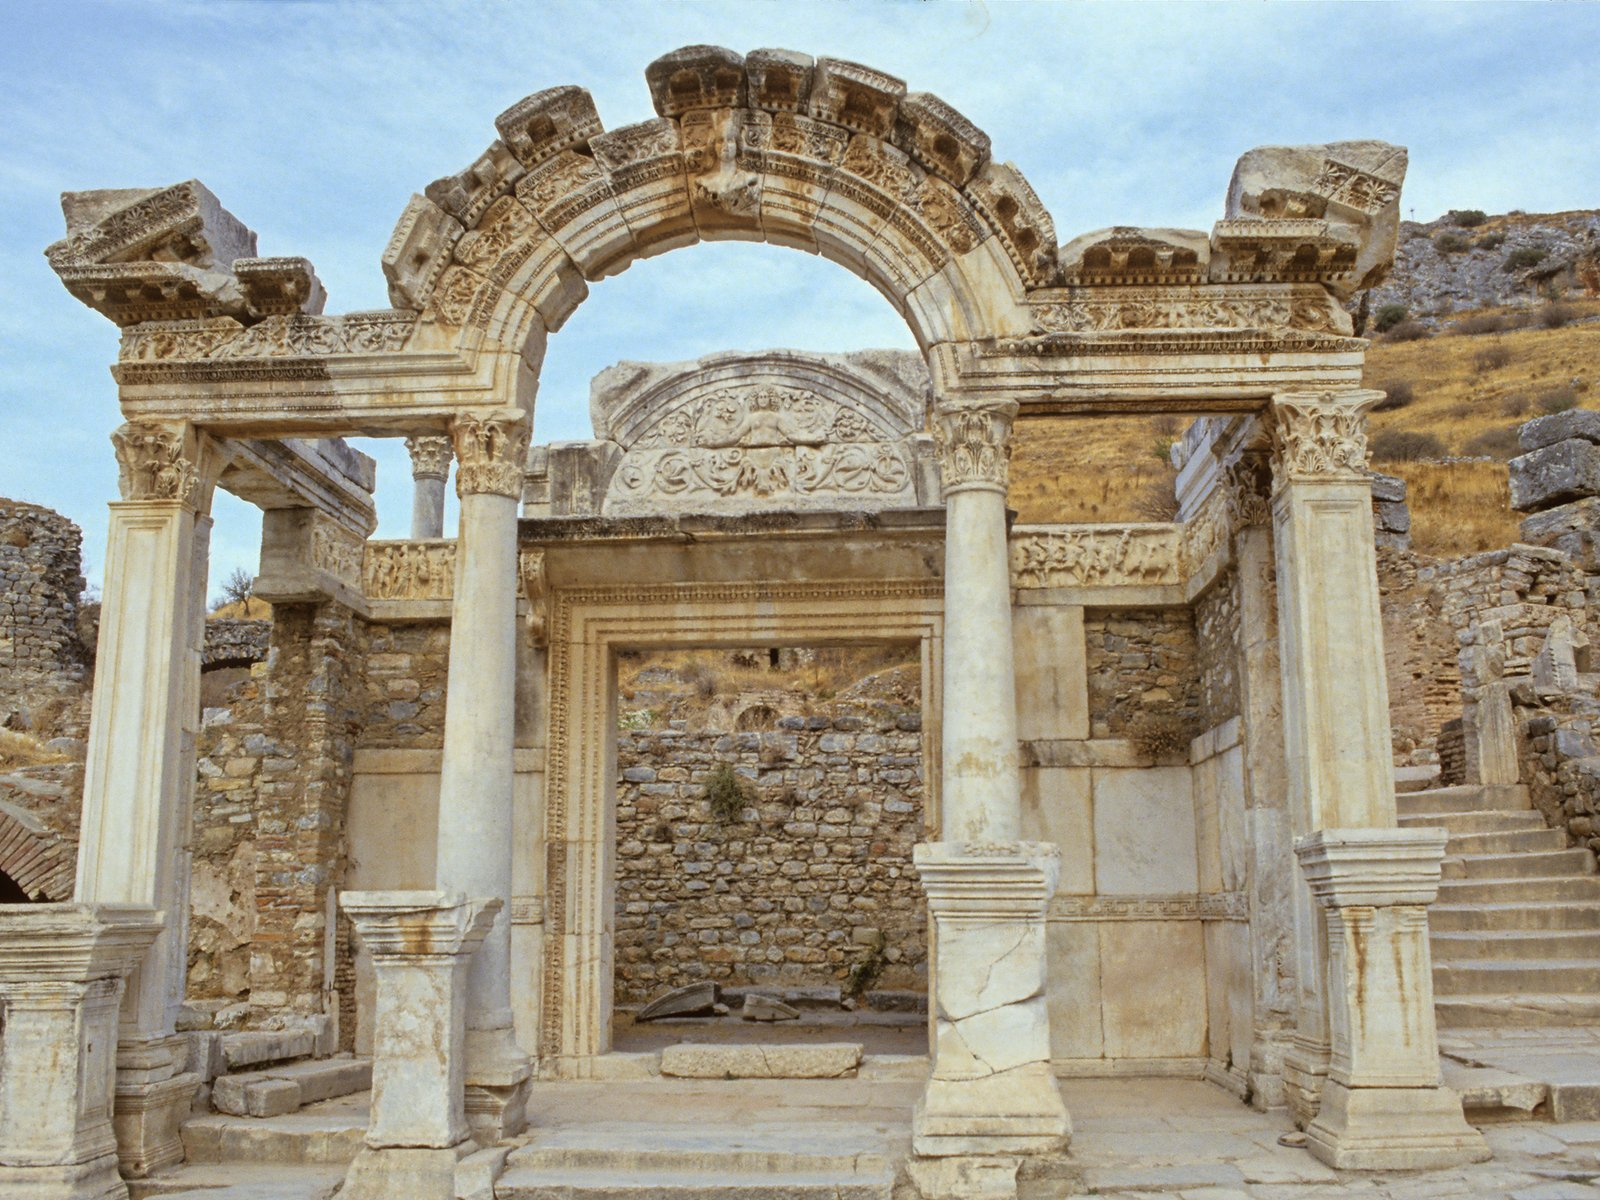 Fall Coffee Wallpaper Samsung 4 Free Greek Roman Ruins Stock Photo Freeimages Com